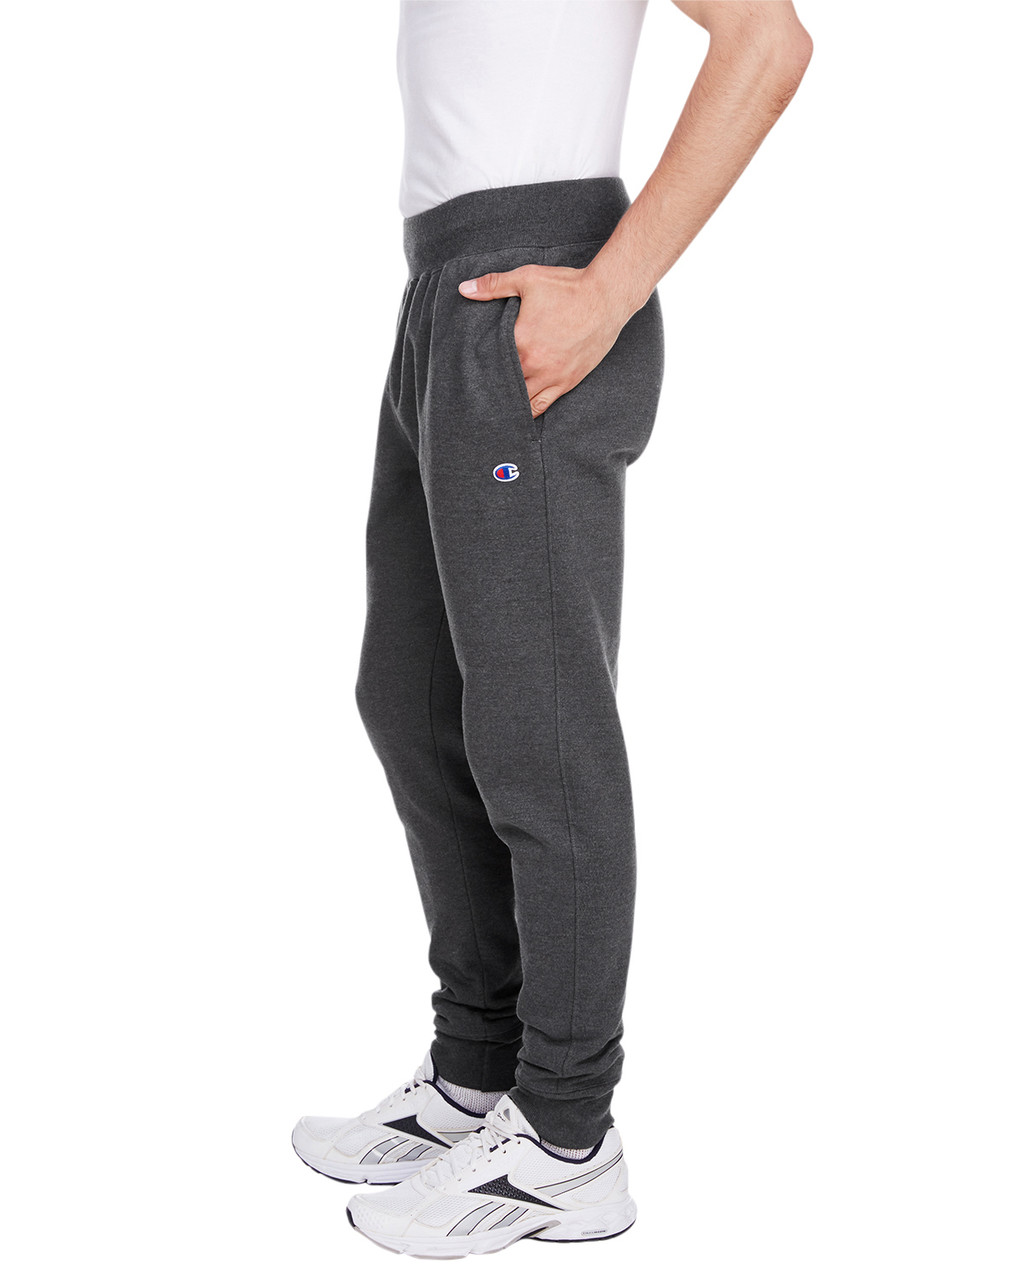 Charcoal Heather - Side, RW25 Champion Men's Reverse Weave Jogger Pant | BlankClothing.ca